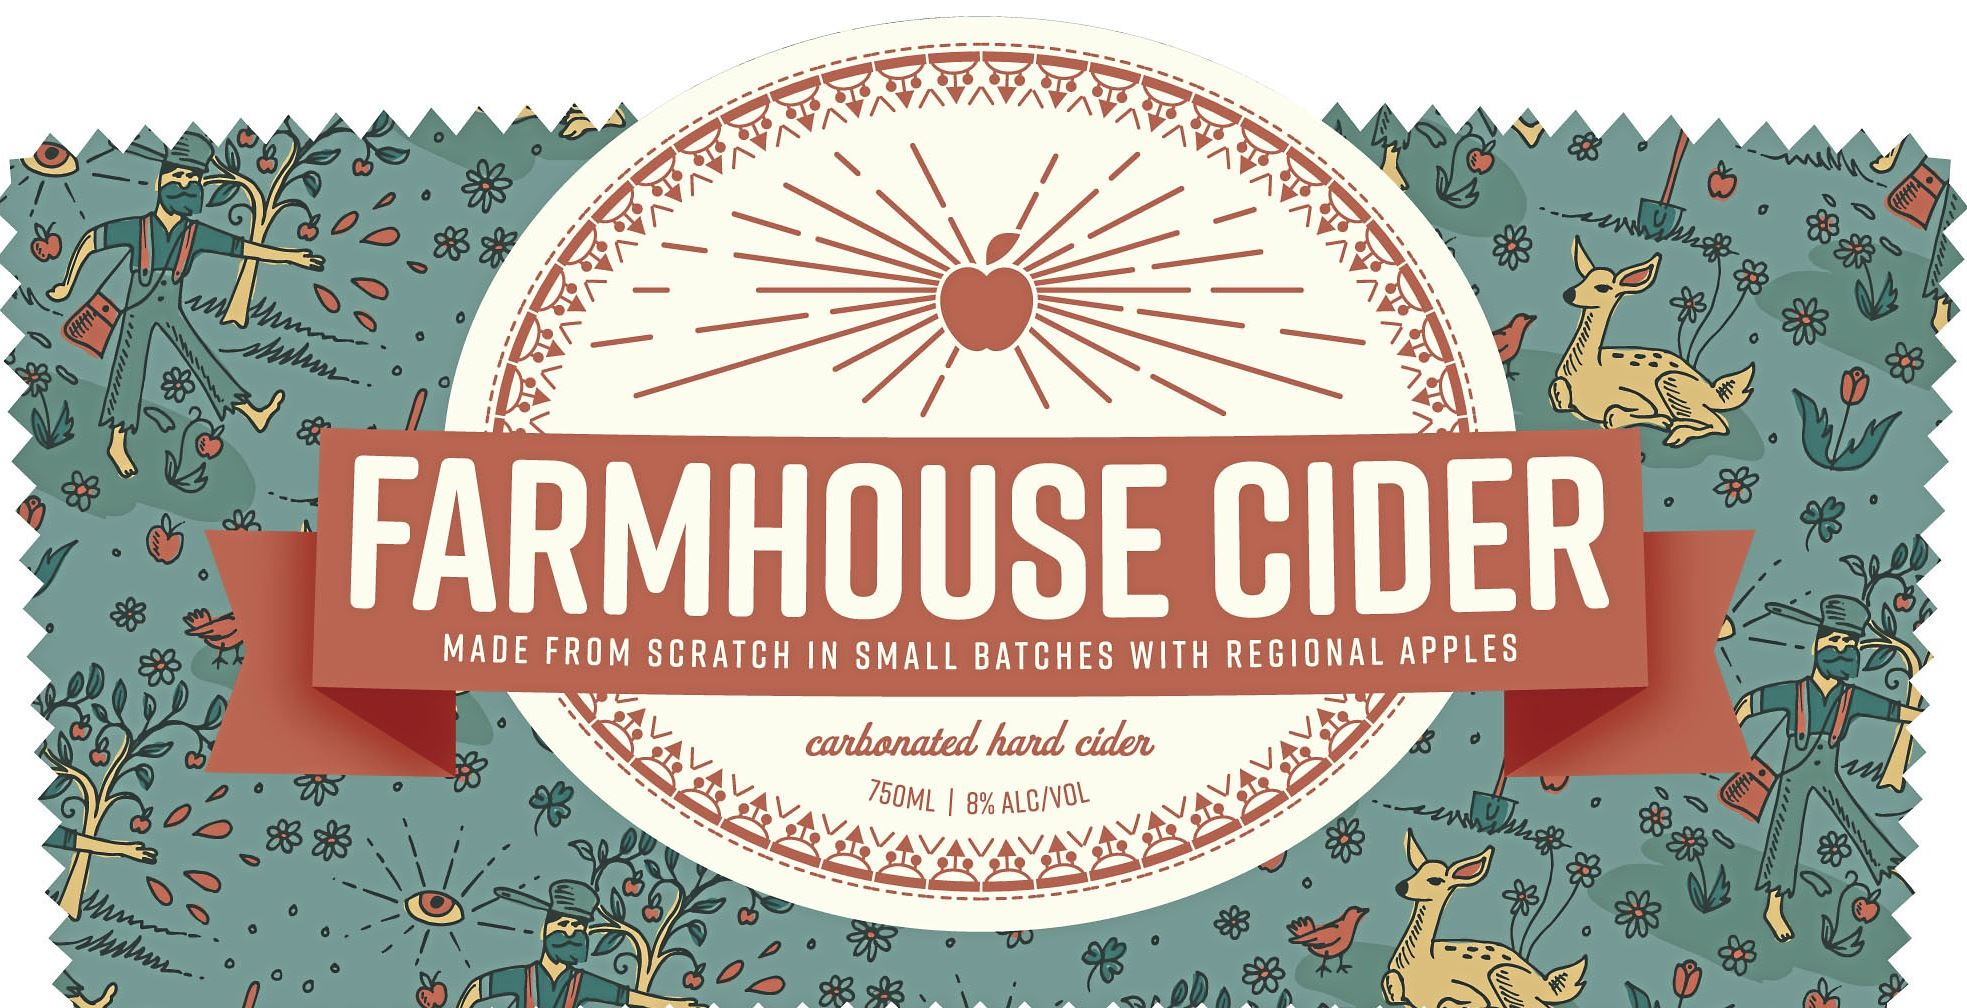 farmhouse cider threadbare-1 The Threadbare Farmhouse Cider label.